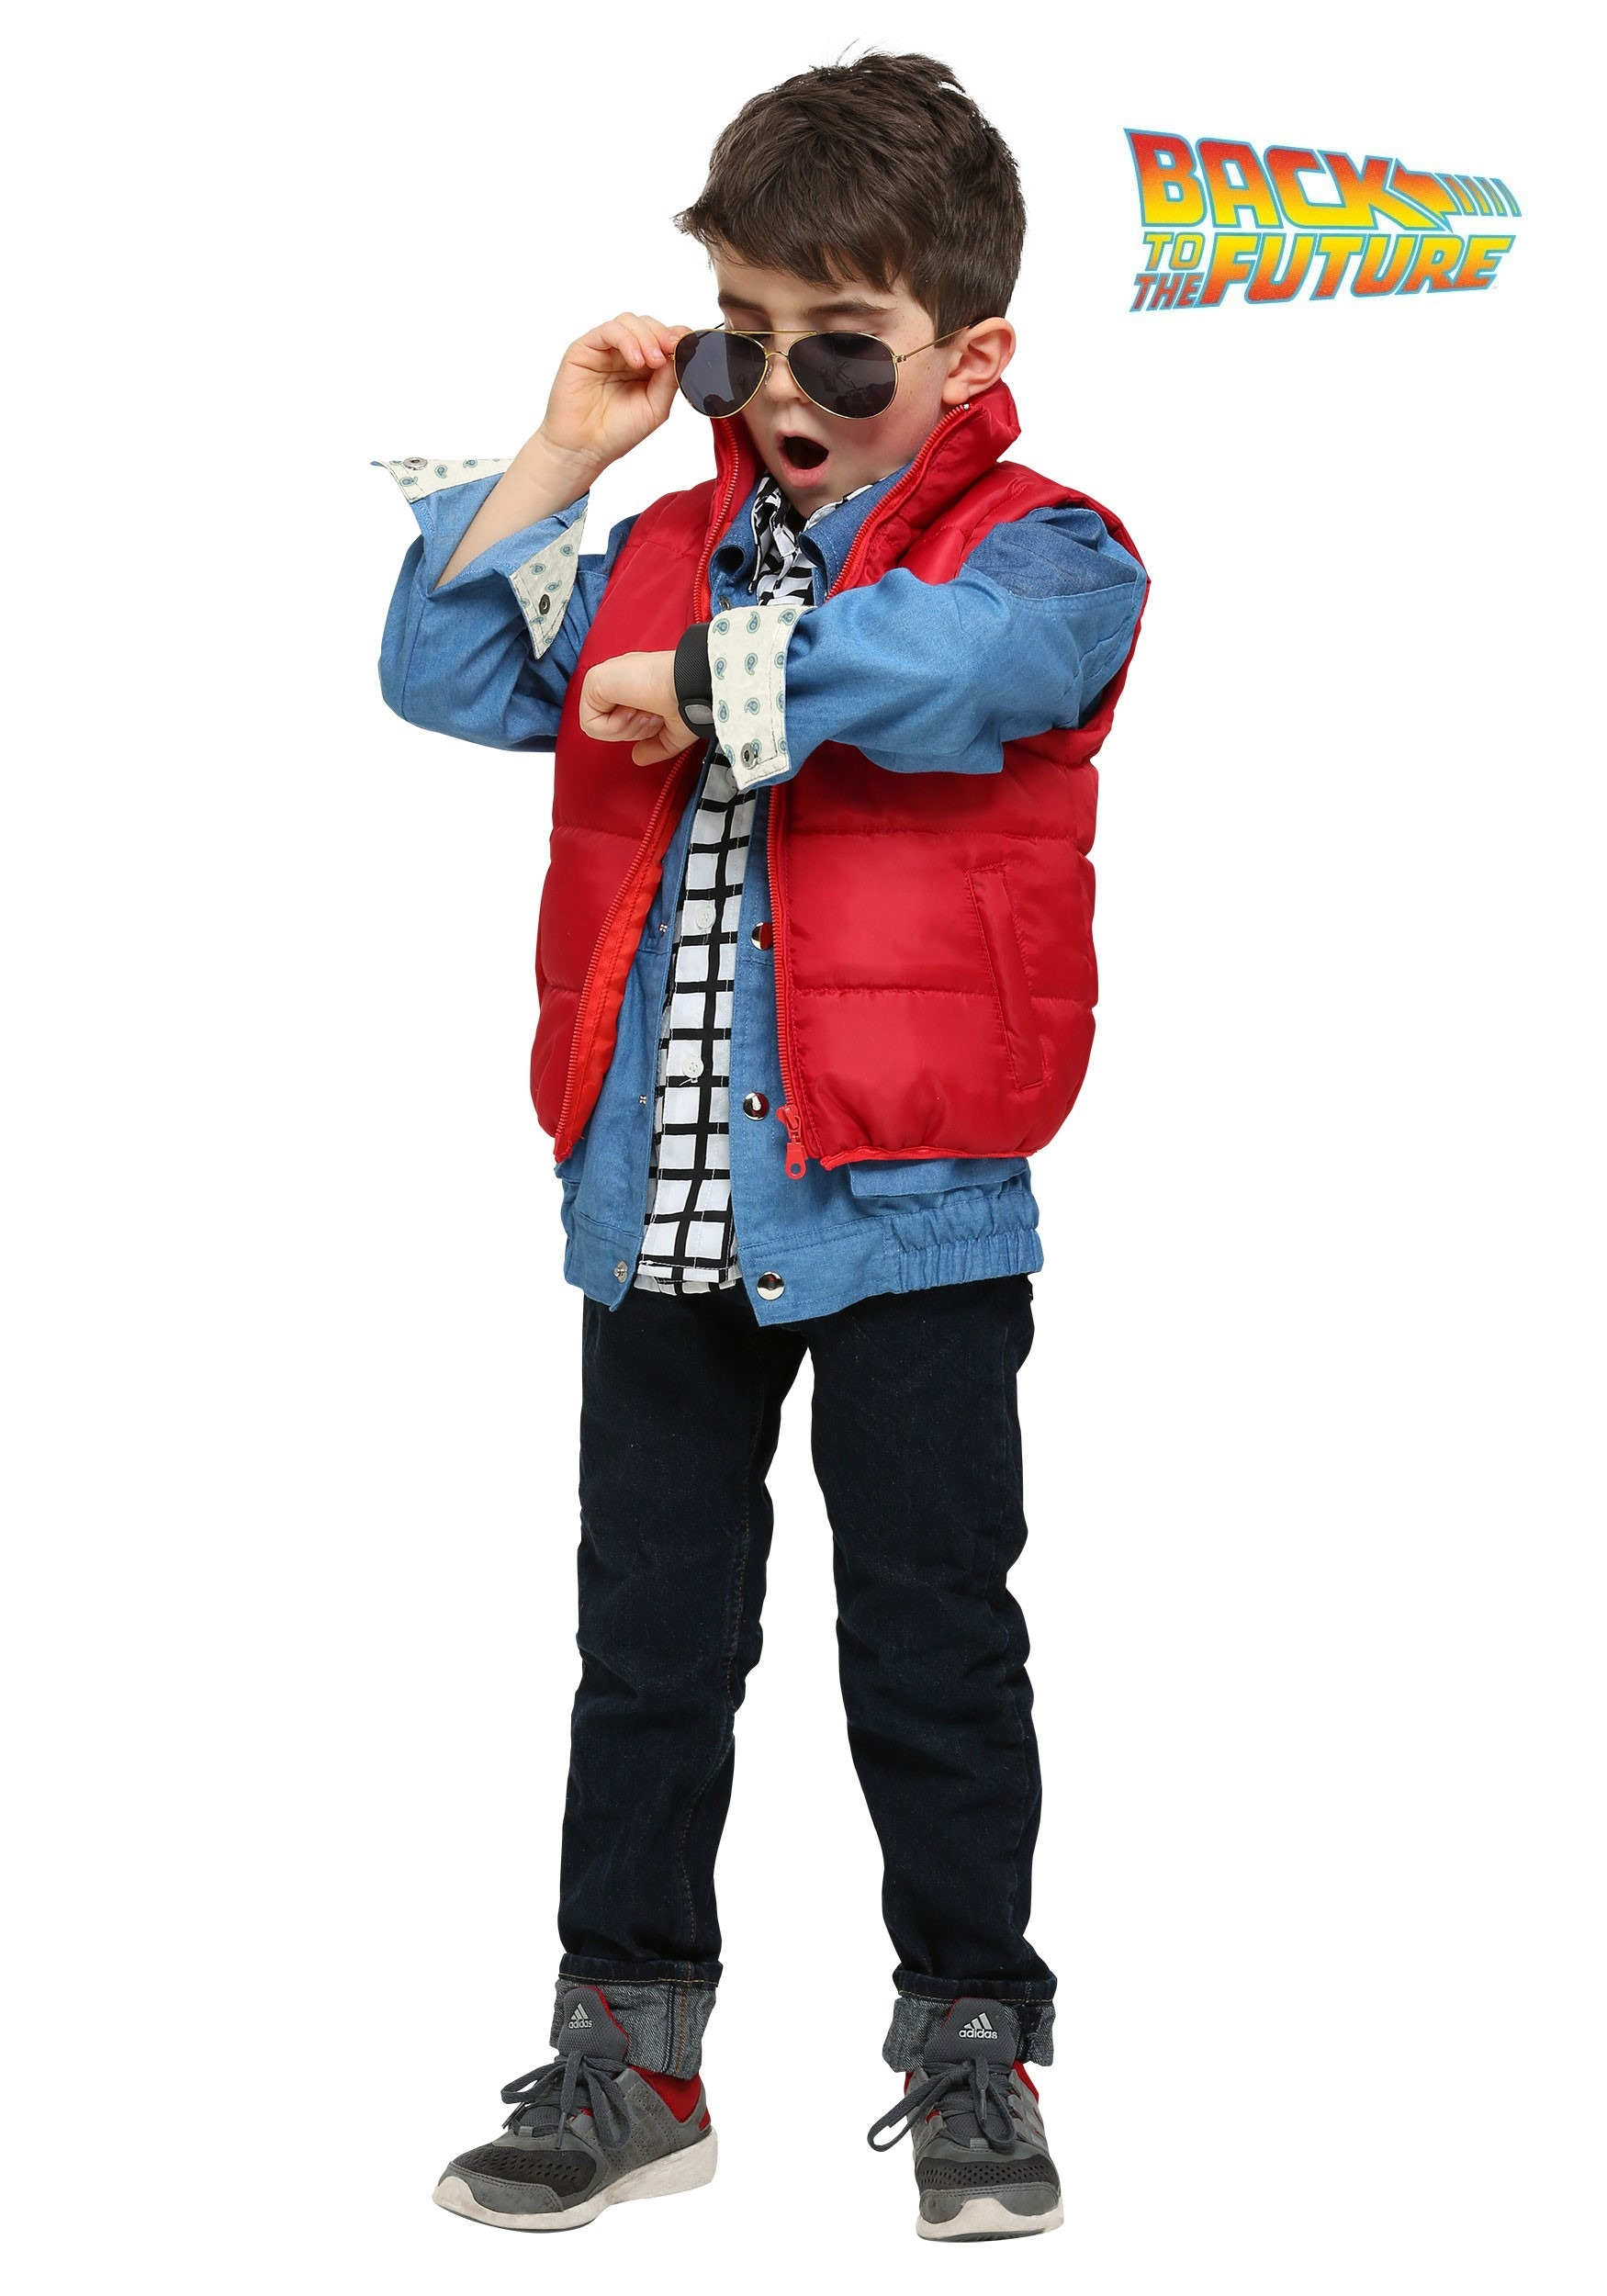 Toddler Boys Marty Mcfly Costume From Back To The Future # Modele Banc En Bois